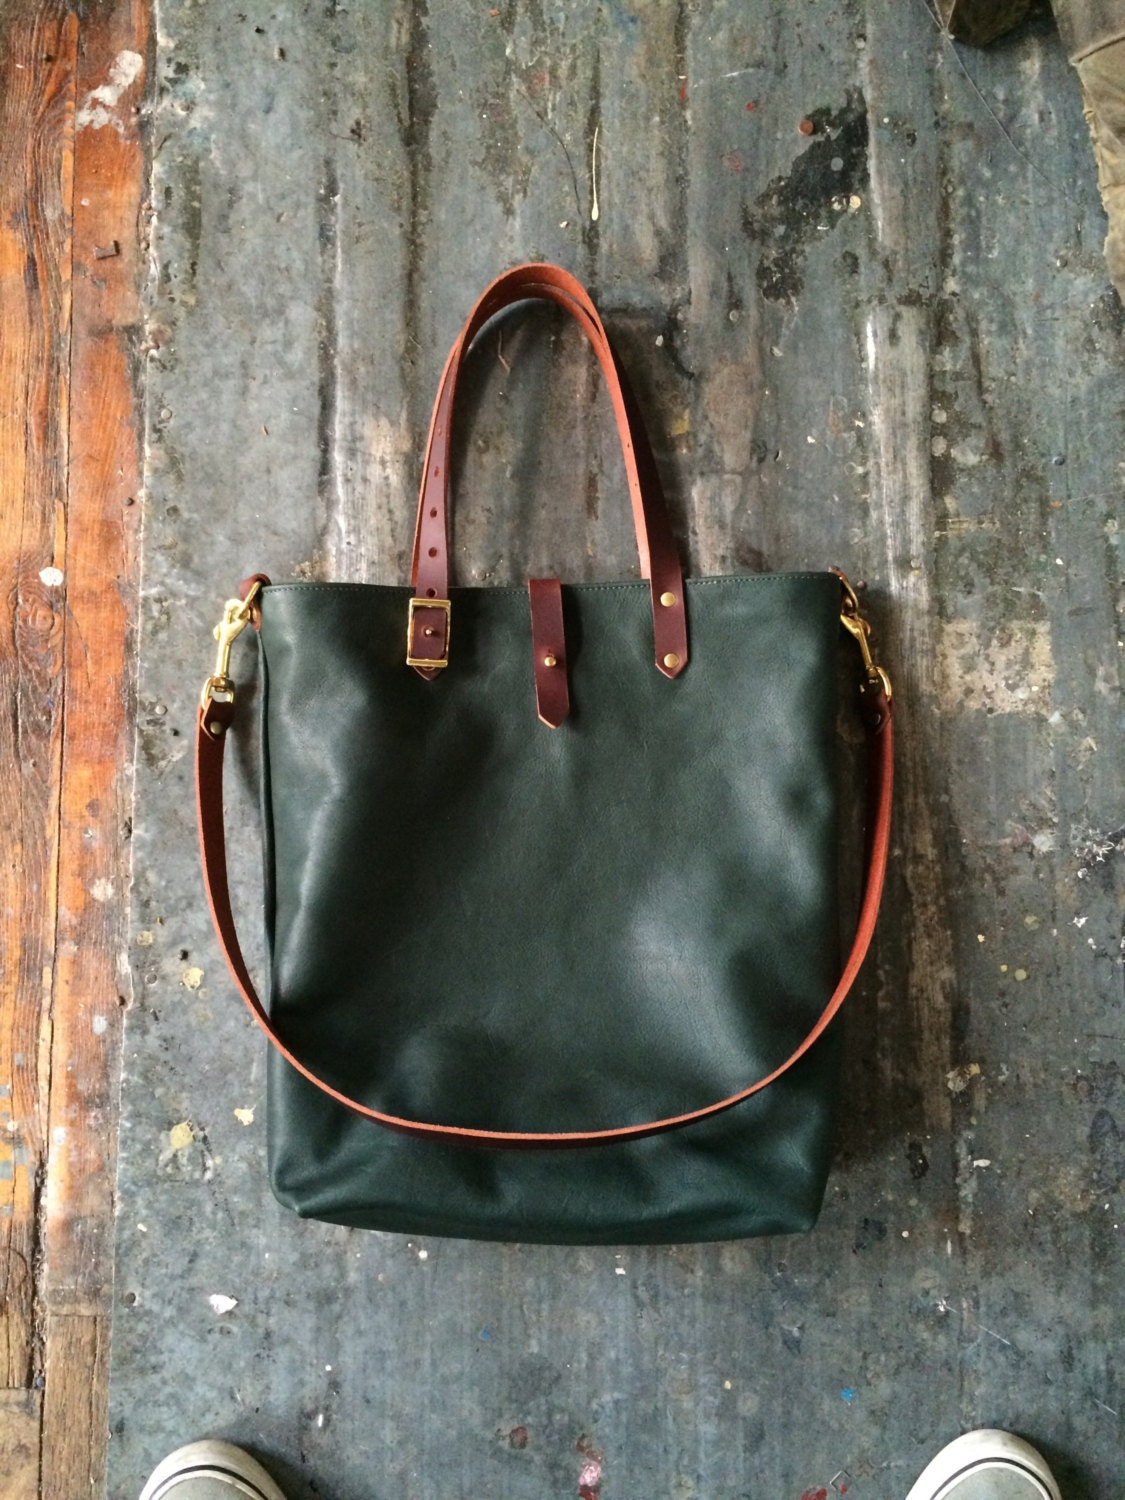 Forest tote in olive and cherry